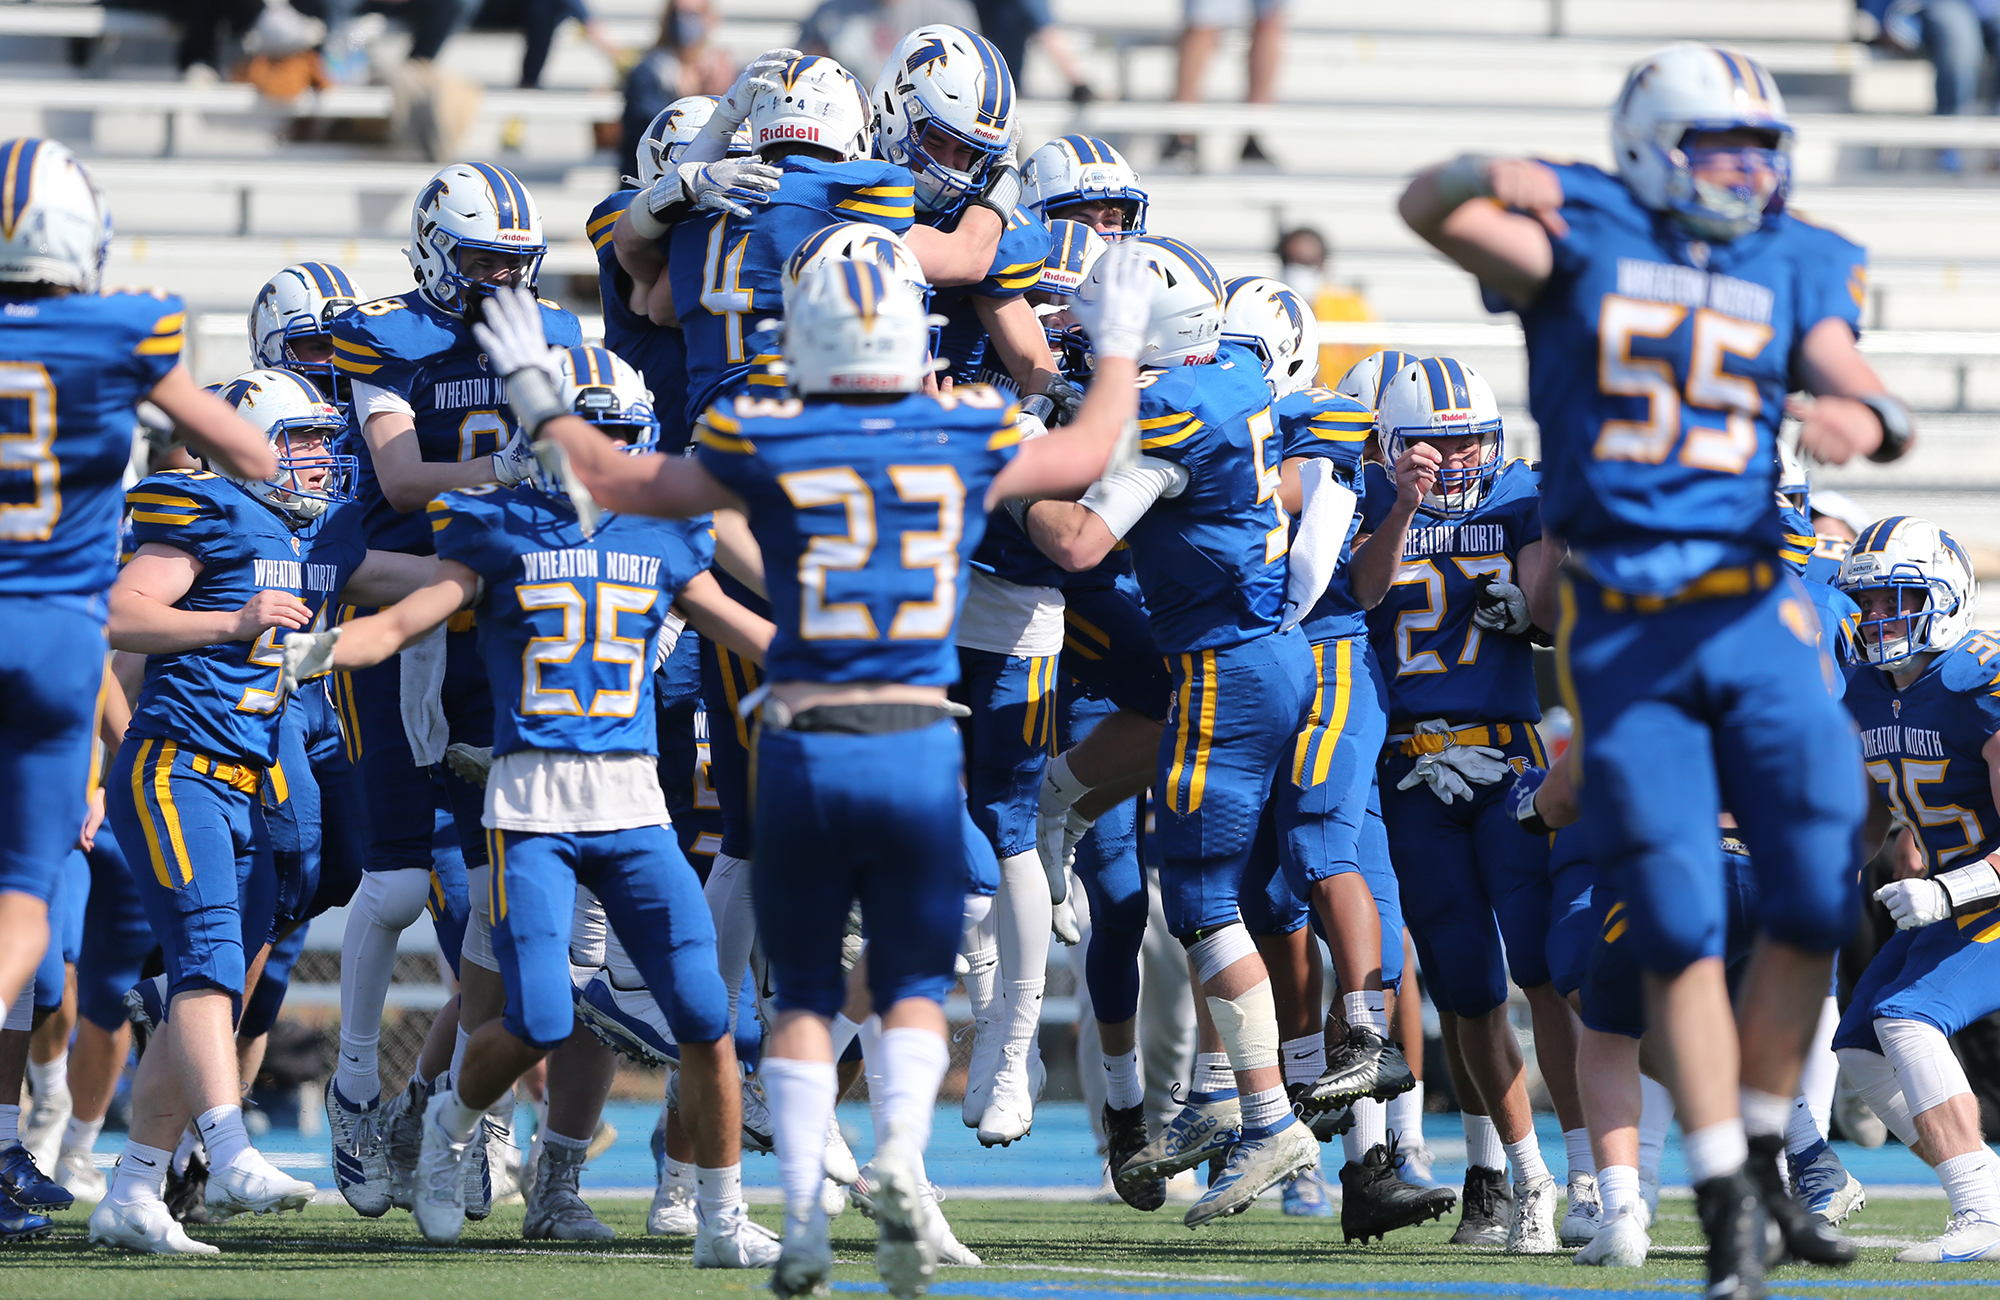 Wheaton North players celebrate their 17-14 victory over Wheaton Warrenville South.